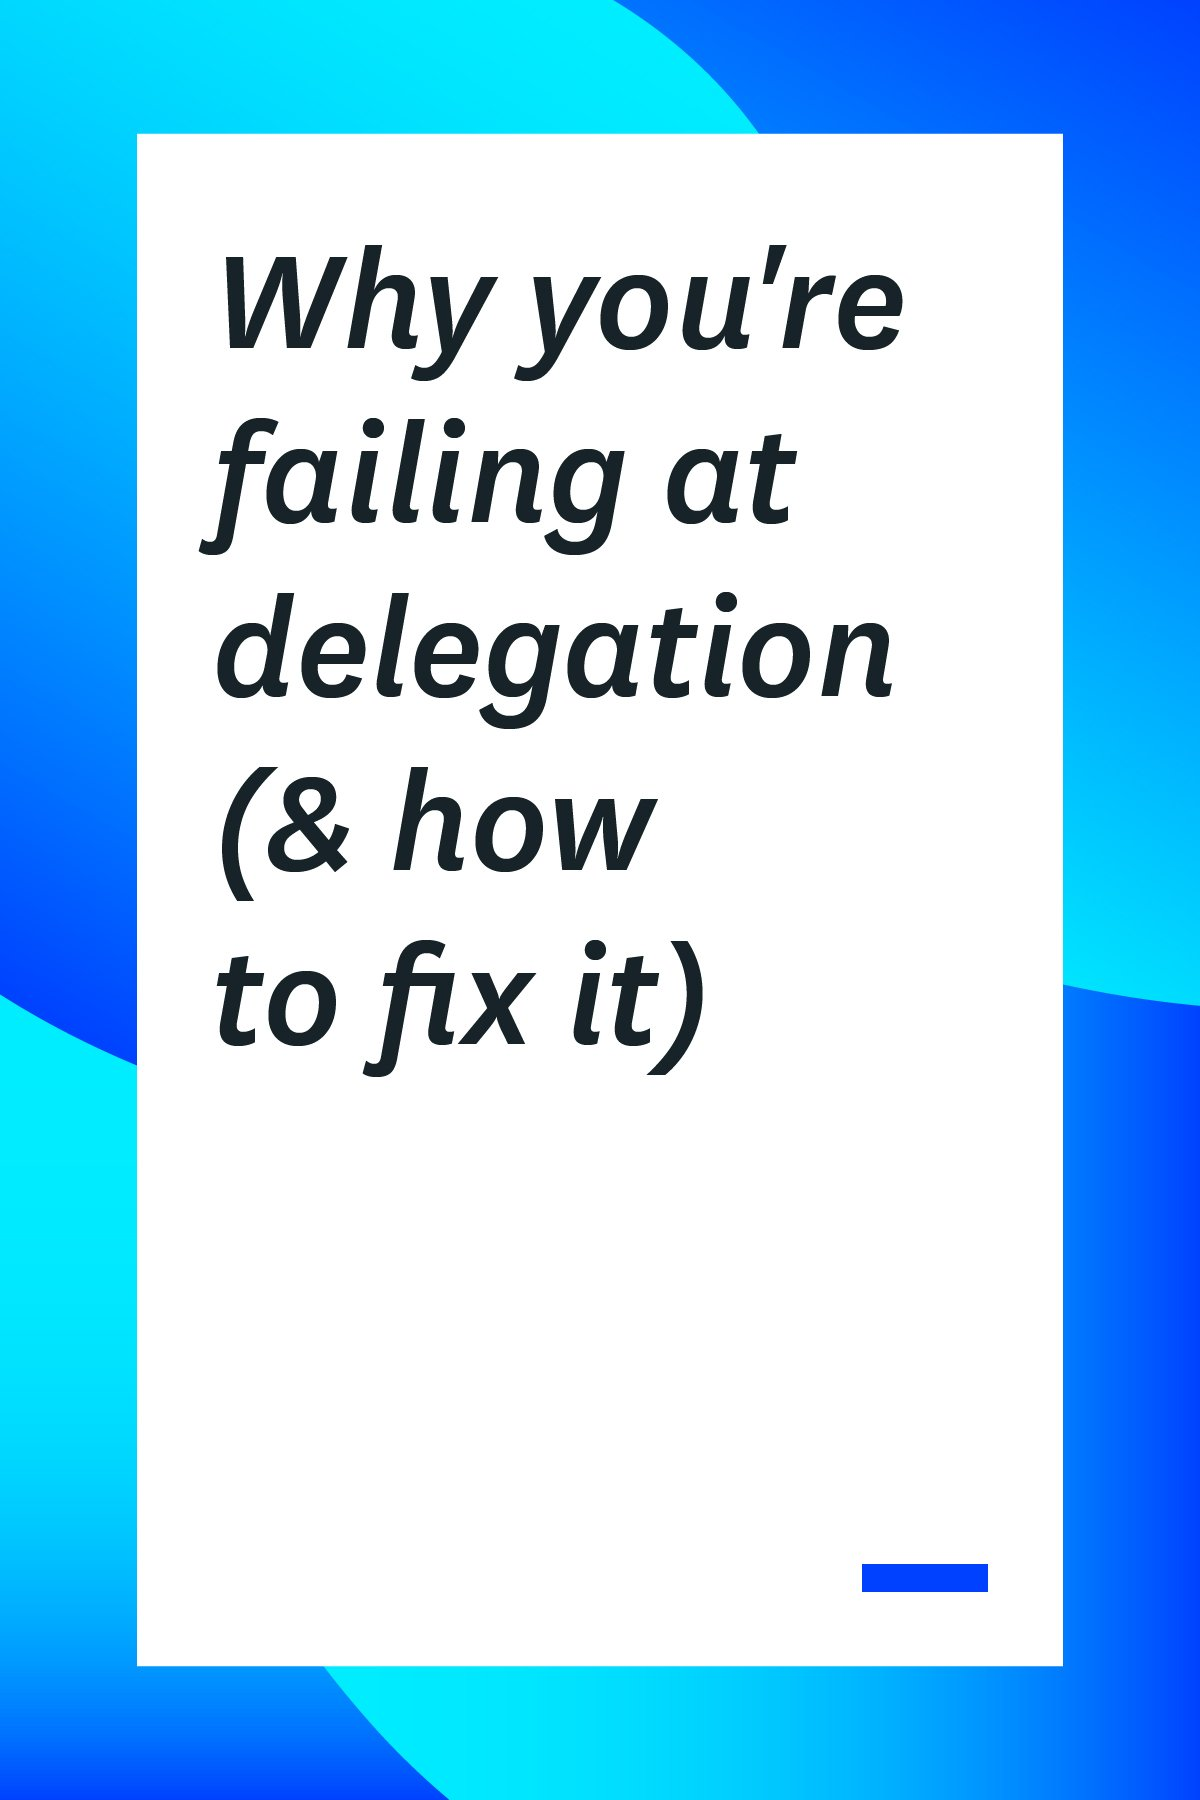 If you're a team lead or manager, one of your jobs is delegation. Here's why you're failing at delegation and how to delegate to your team members more effectively. #tipsformanagers #management